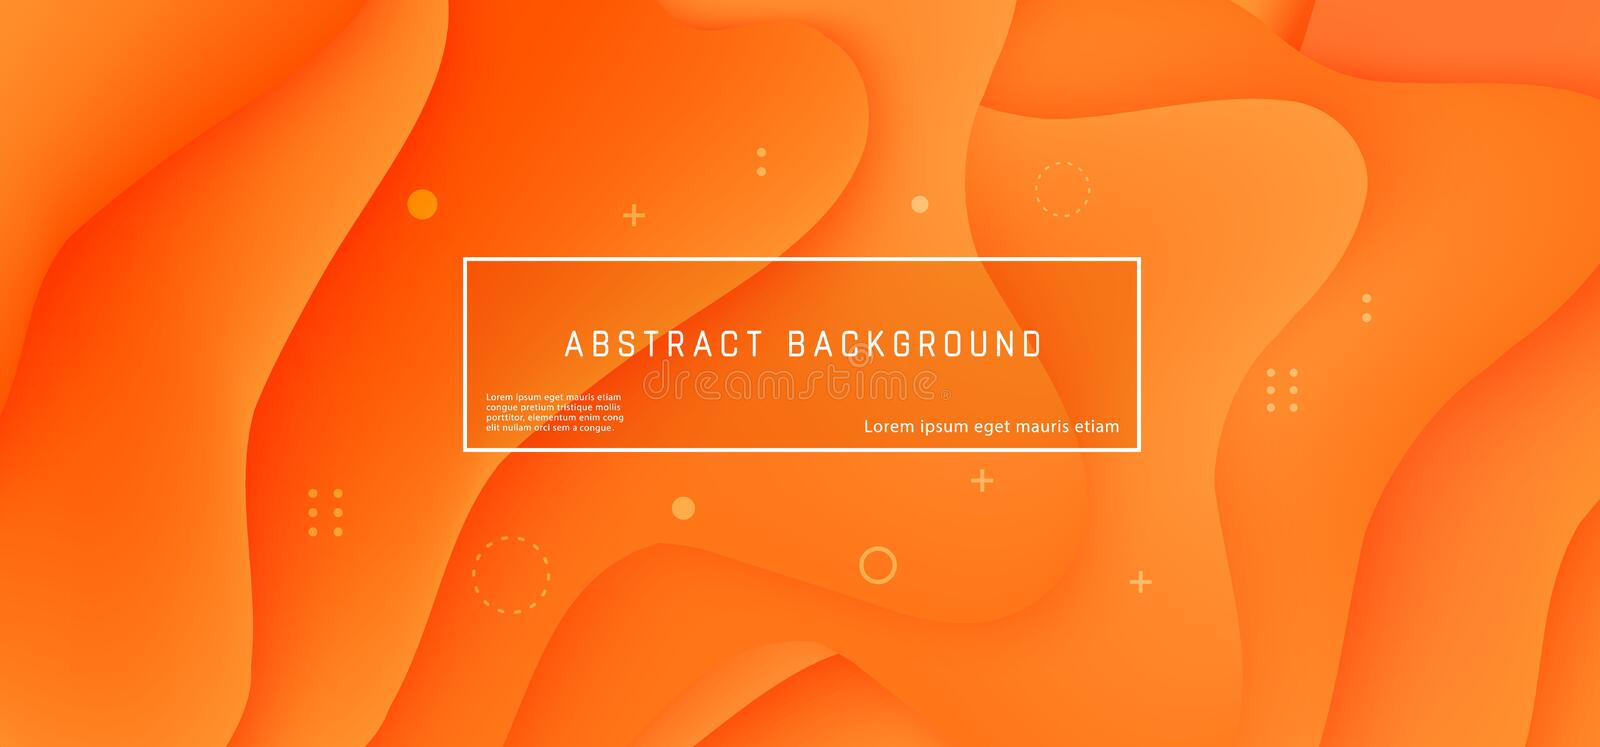 Vector abstract background wave motion flow orange royalty free illustration